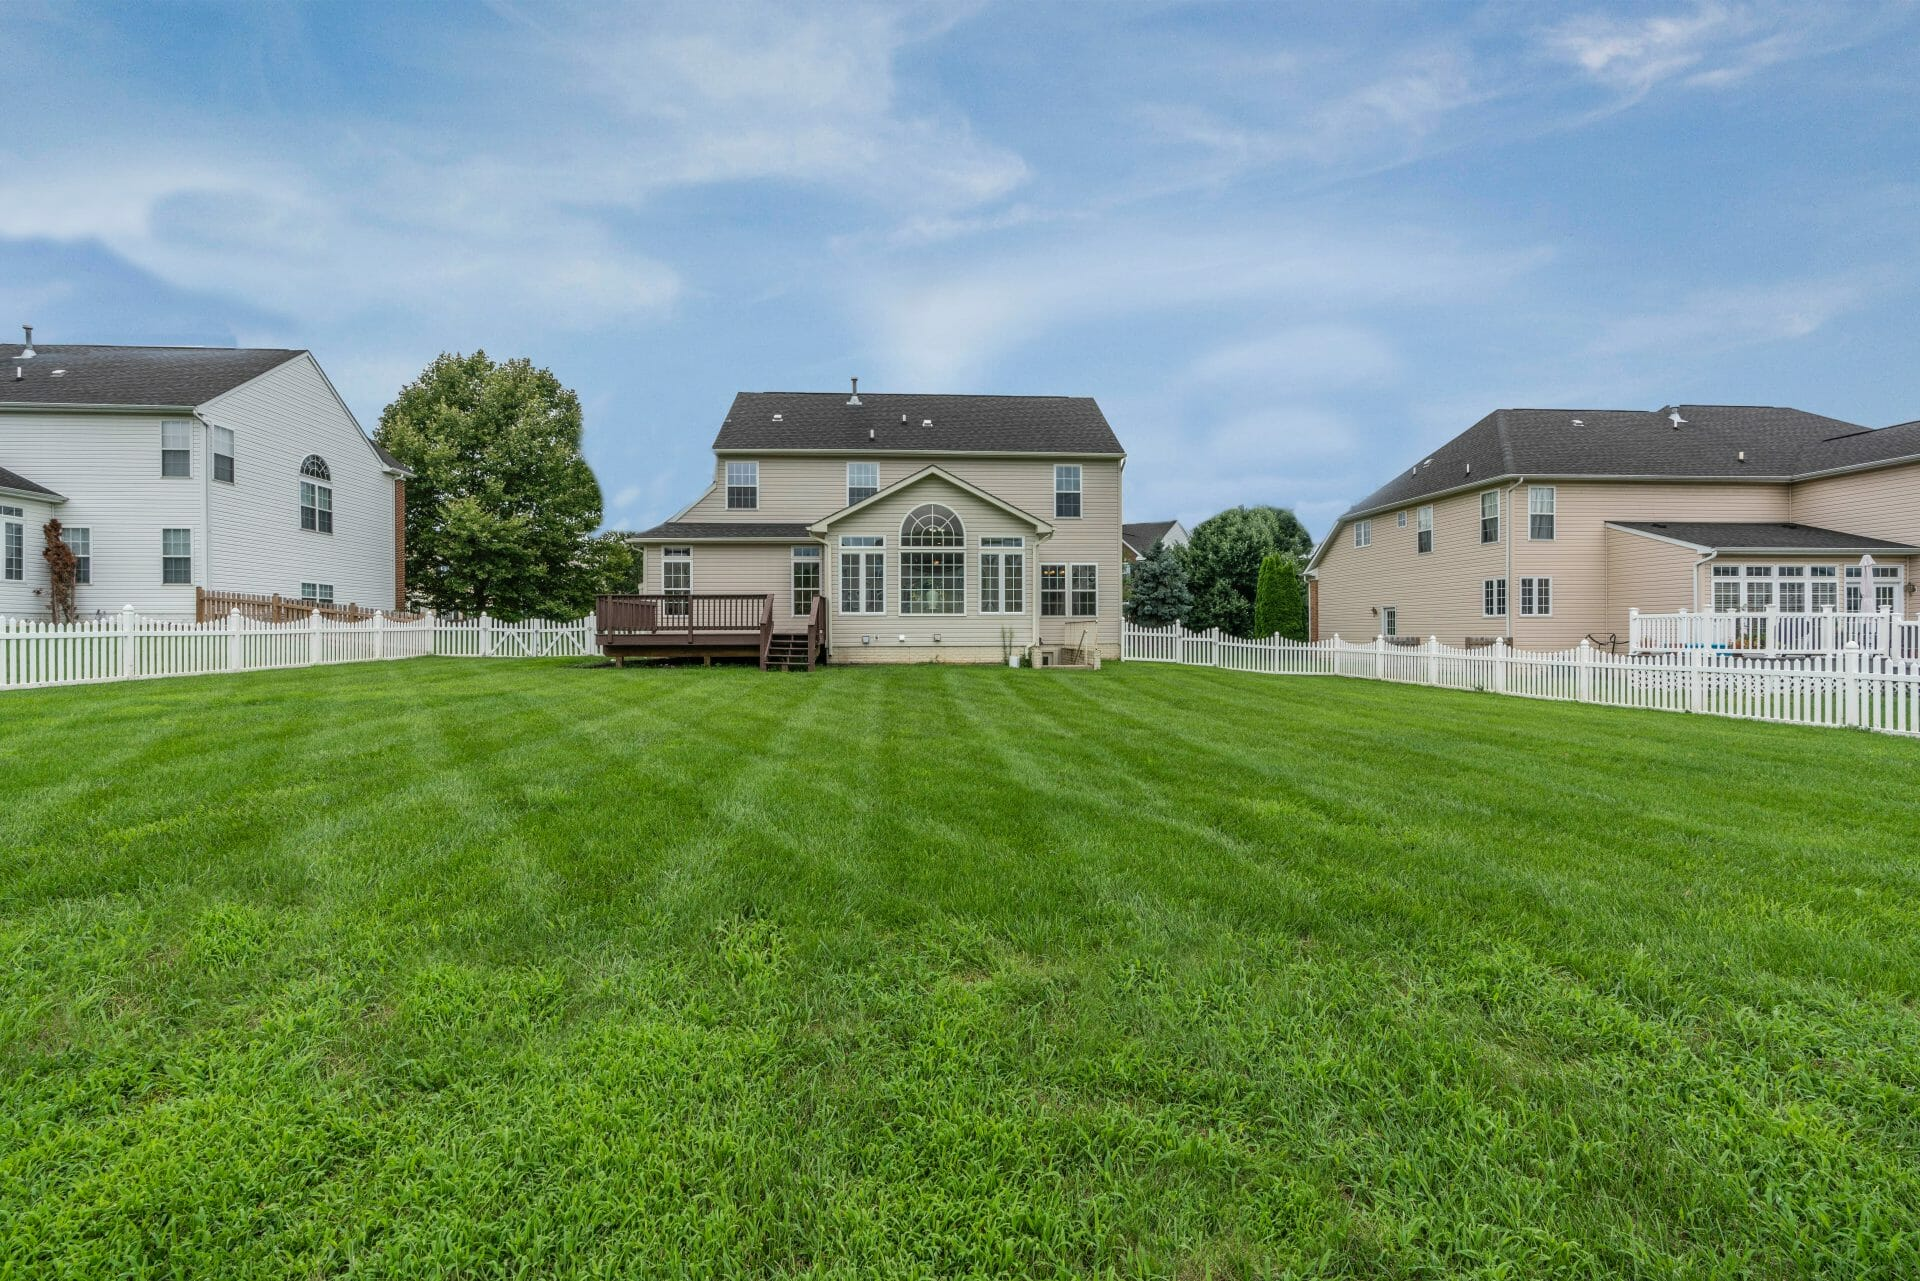 Image of yard with house and white fence for Real Estate News for Investors Podcast Episode #731